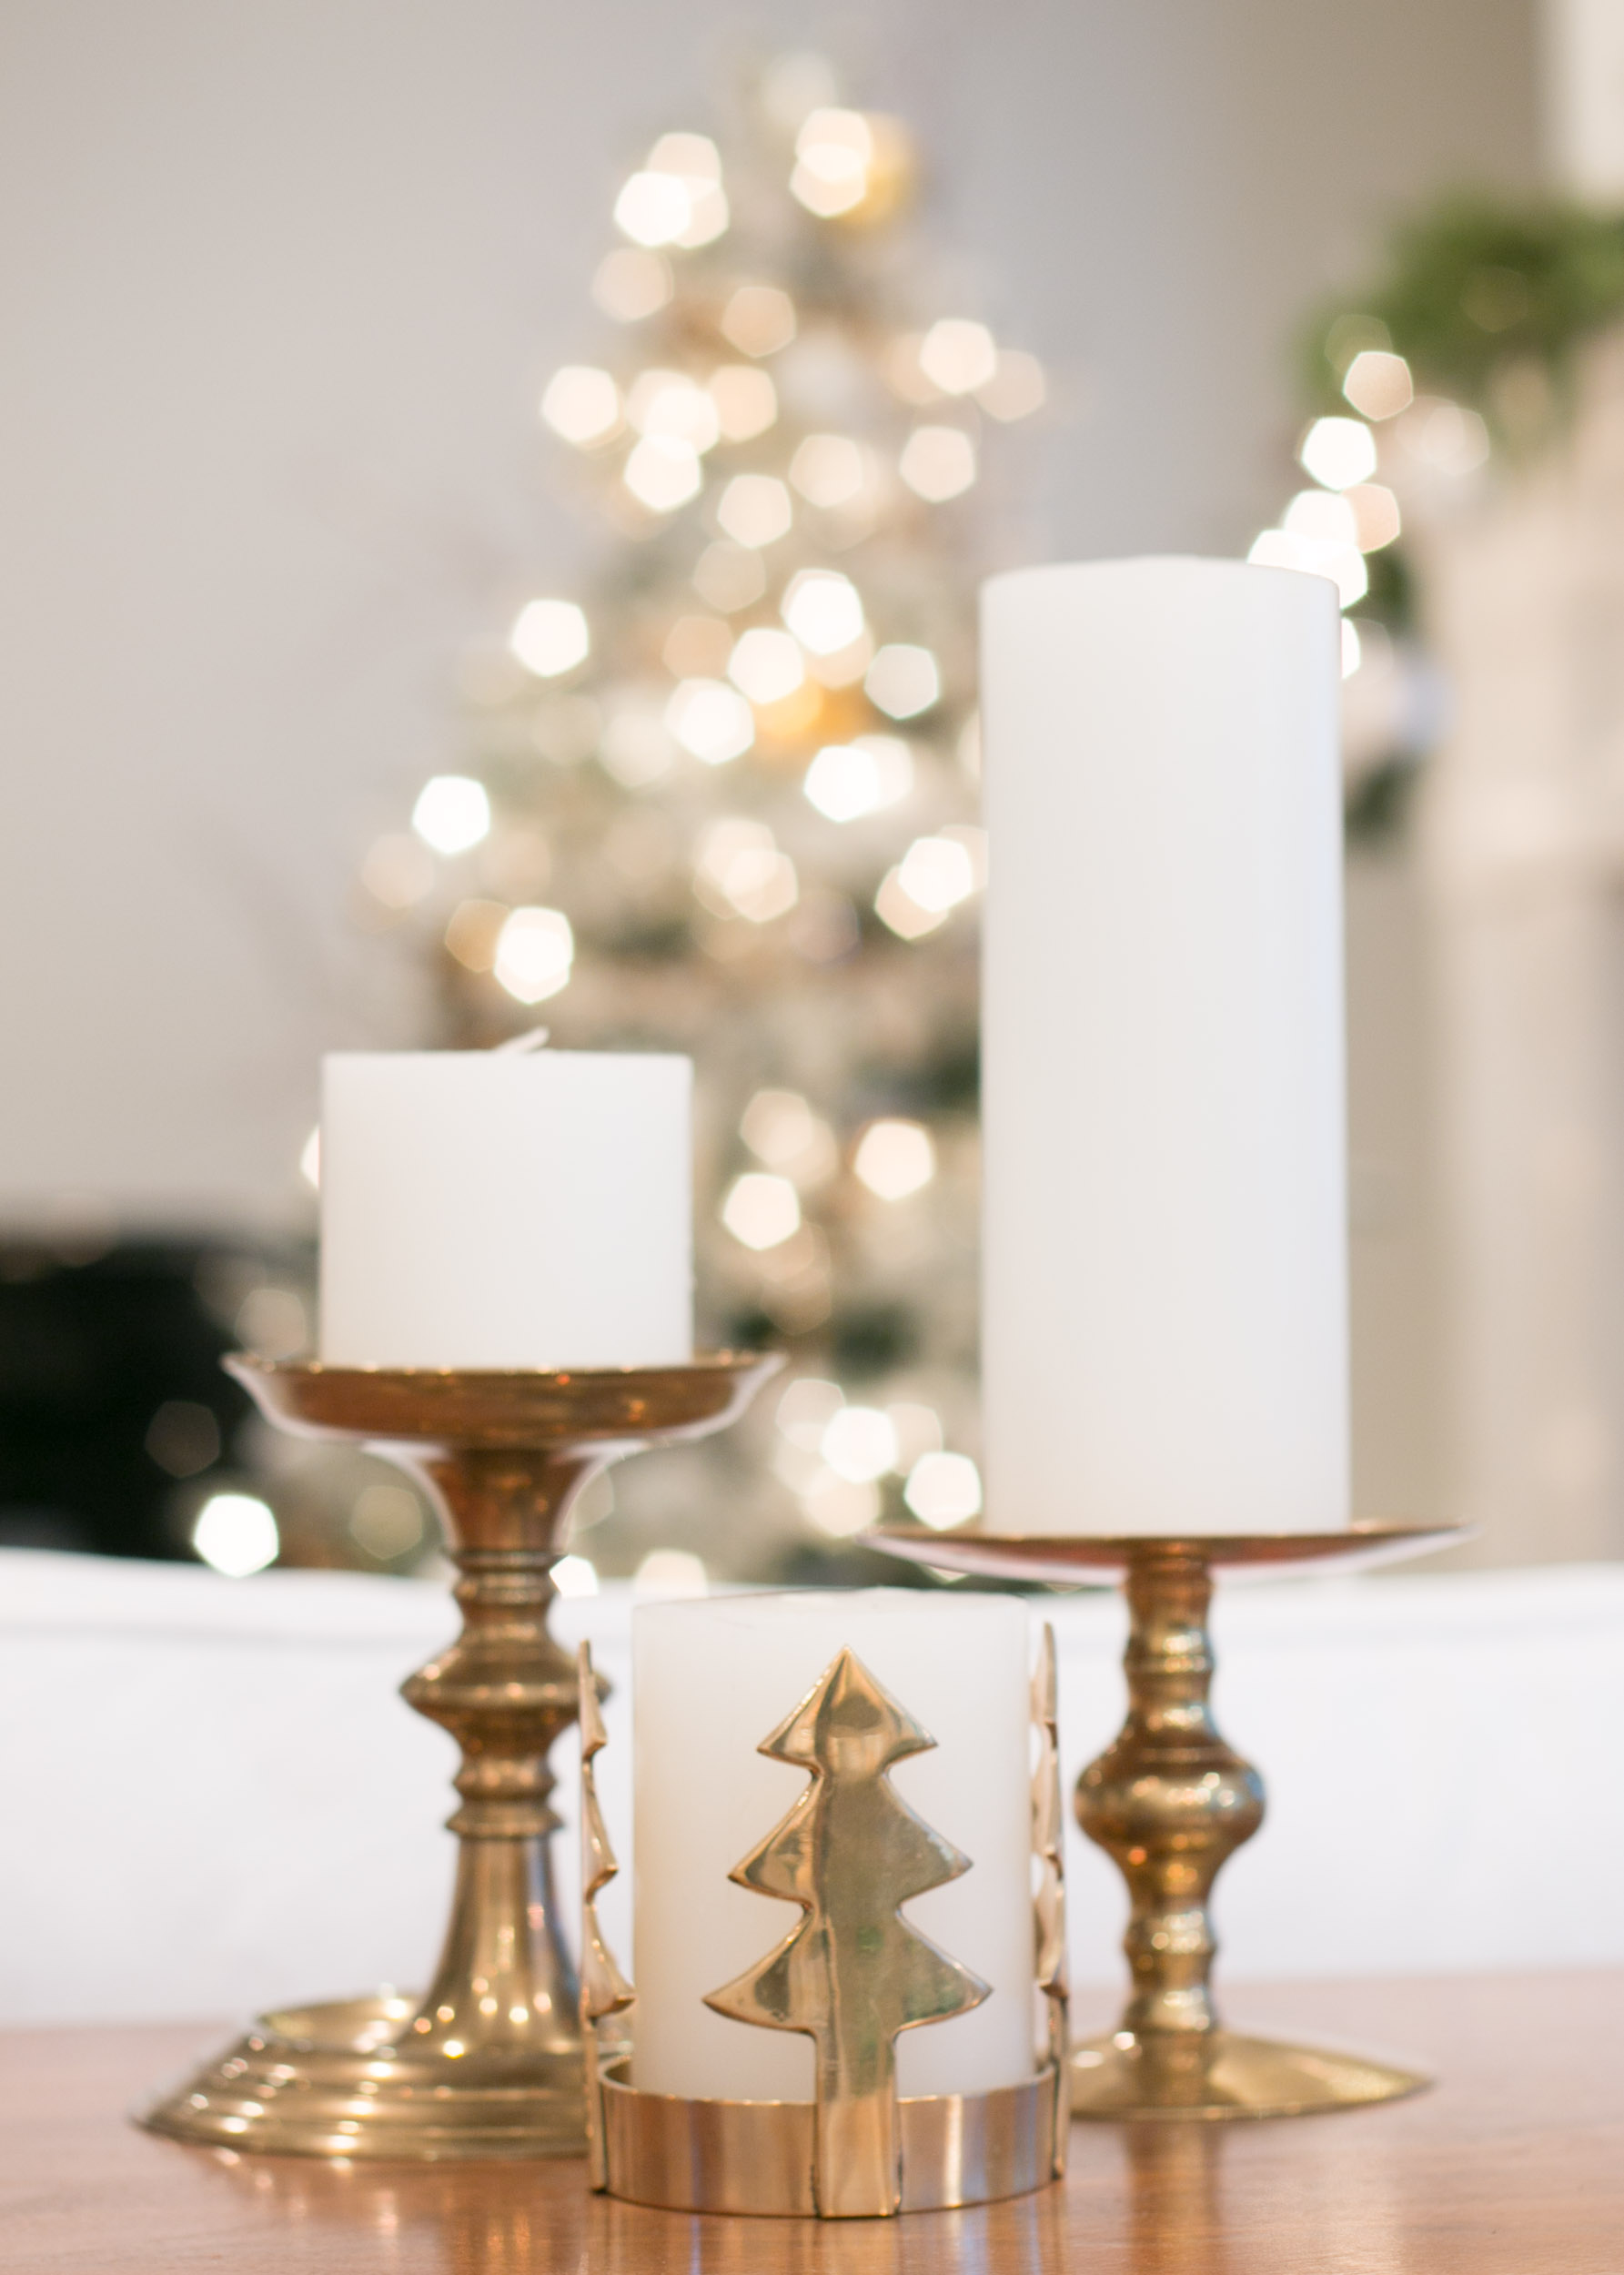 lindsay hill interiors deck the halls tour candles